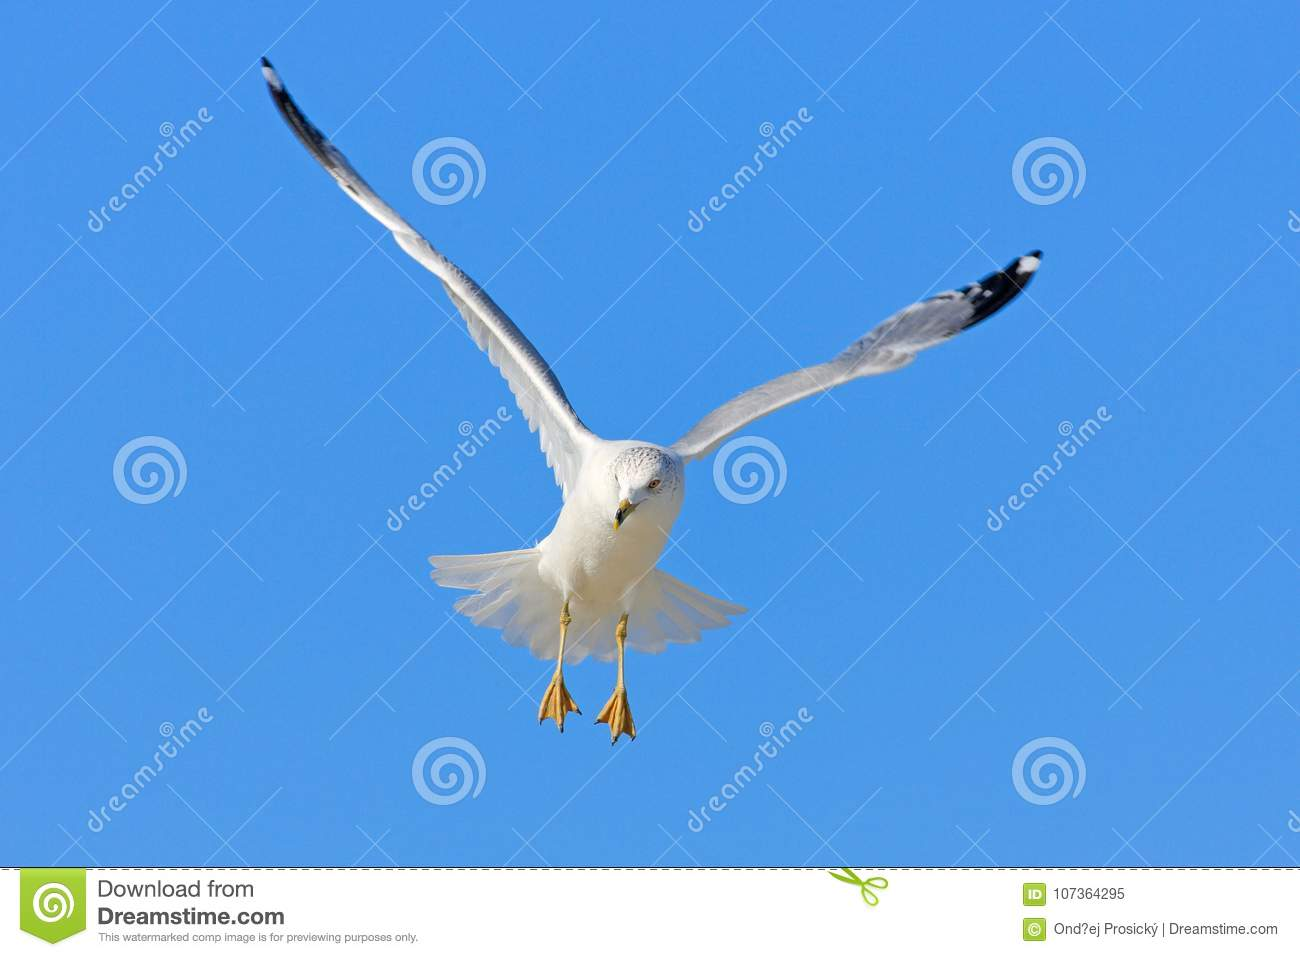 Bird in fly with blue sky. Ring-billed Gull, Larus delawarensis, from Florida, USA. White gull in flight with open wings. Action s